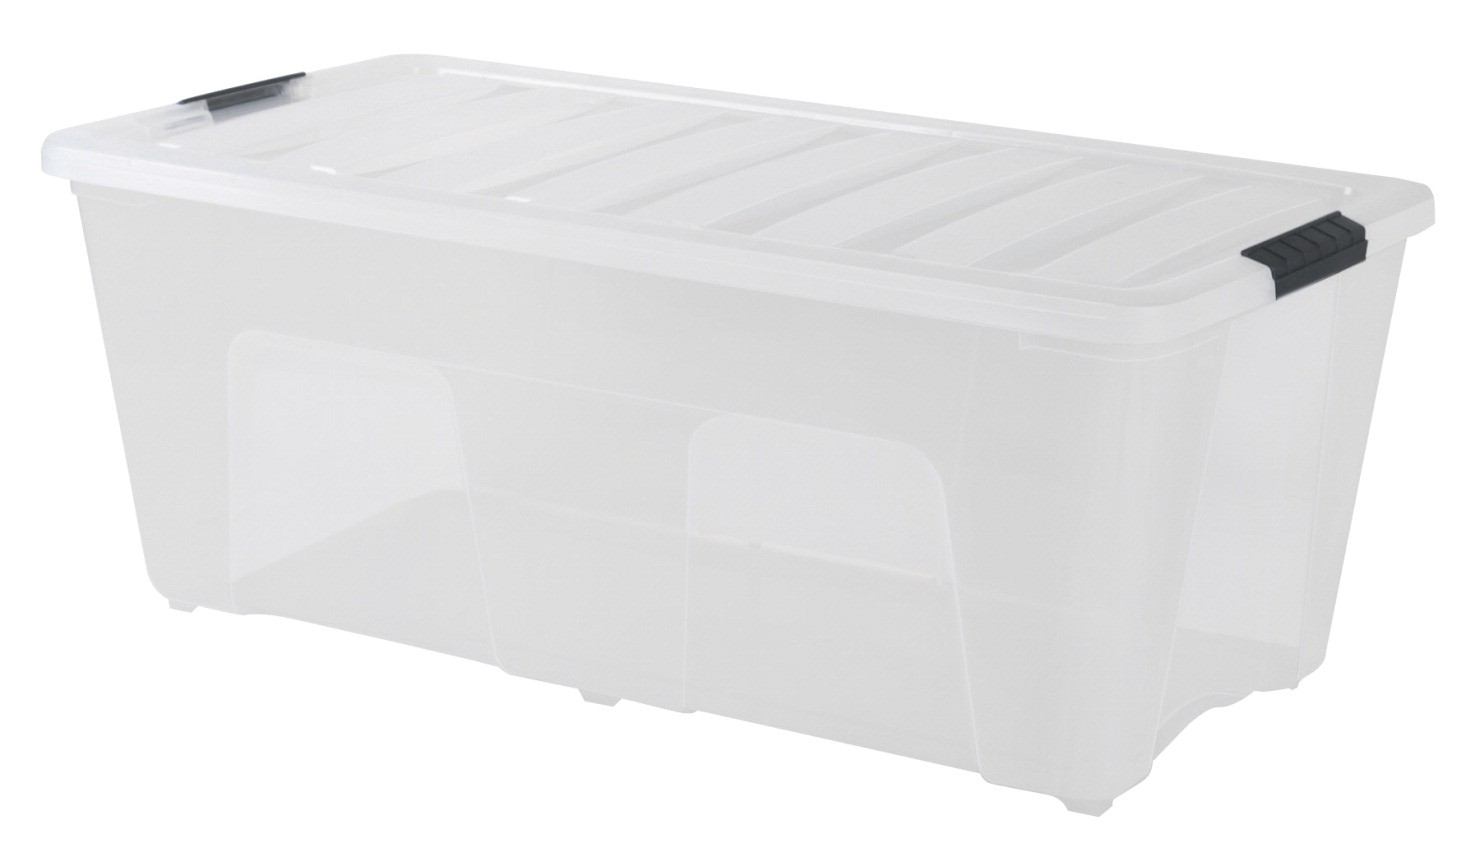 Storage Box with Handle, 22 X 16-1/2 X 13 In., 53.6 Qt, Plastic, Clear/Black